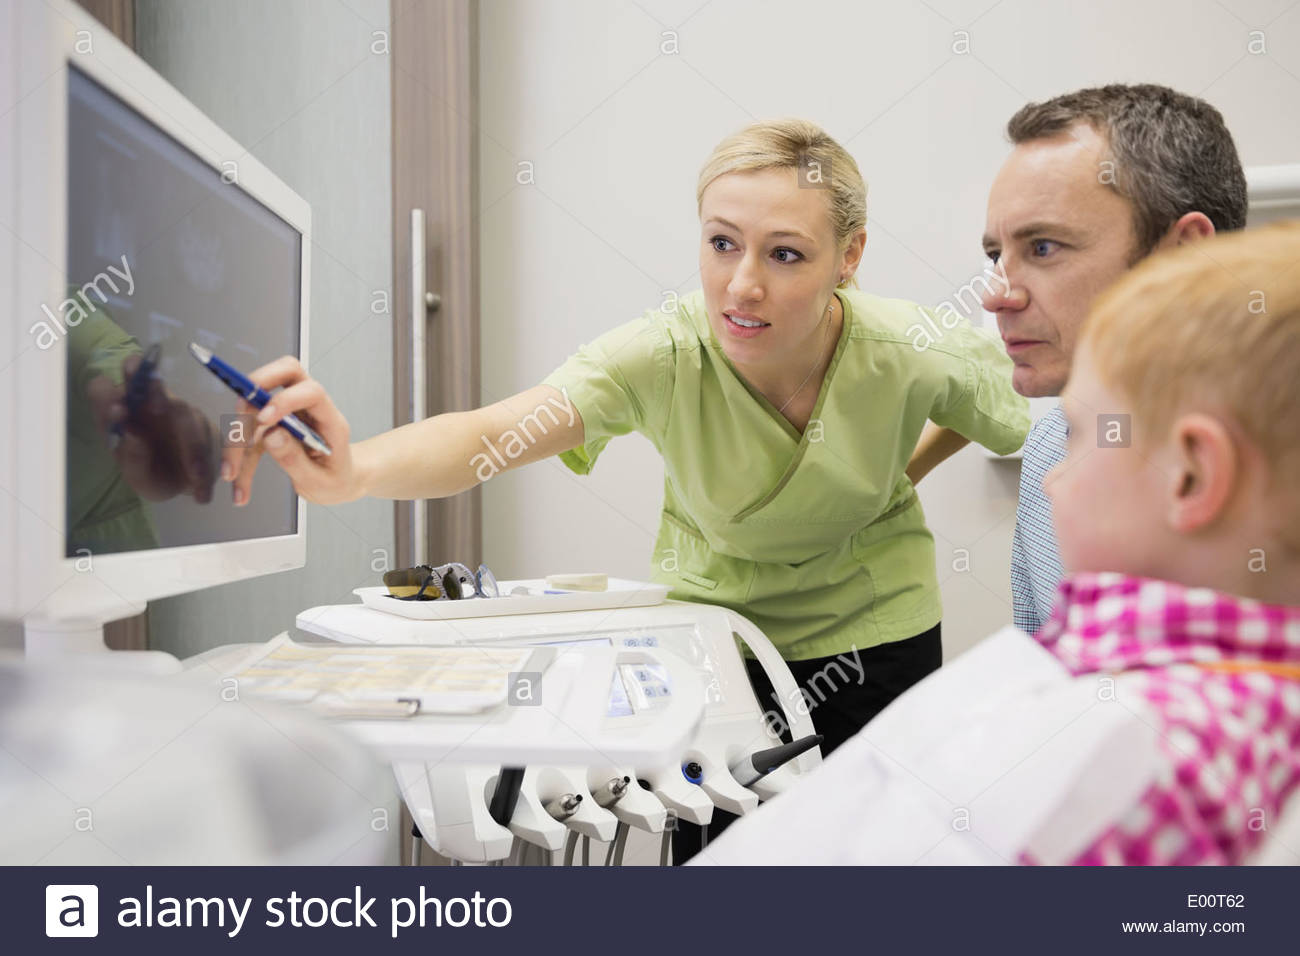 Dental assistant reviewing x-rays with patient - Stock Image